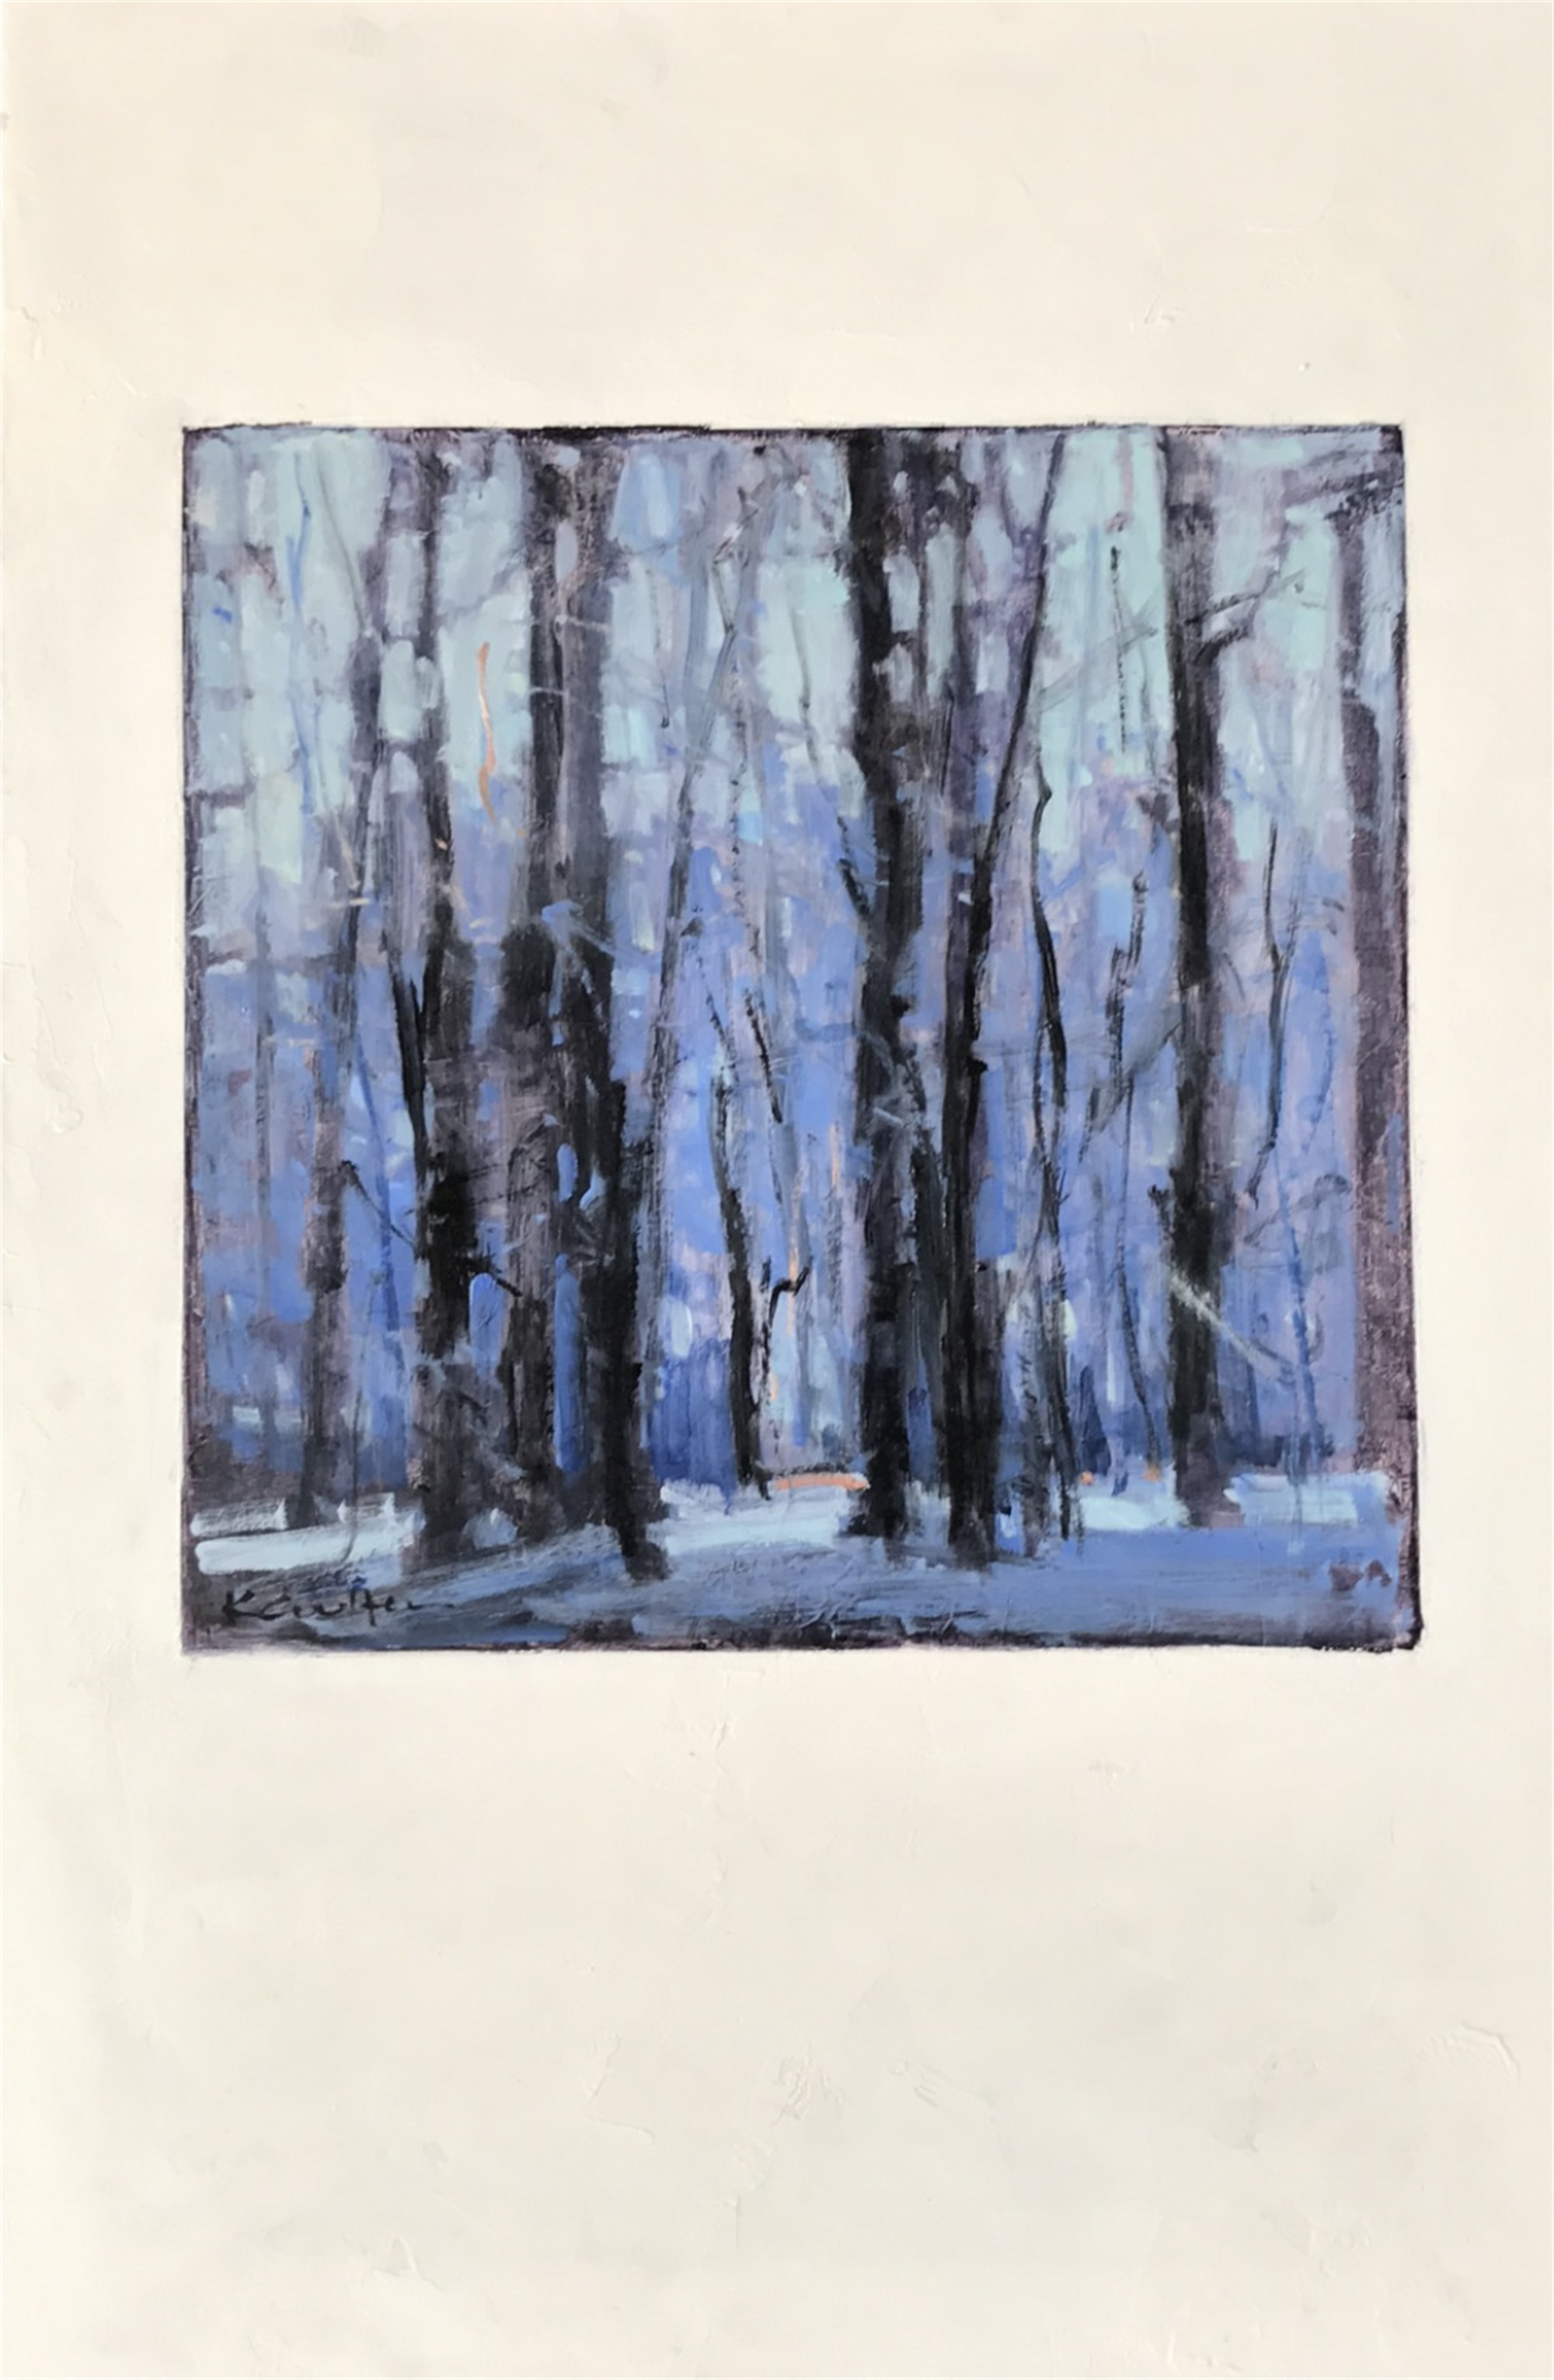 Winter Highlights I, 2017 by Kim Coulter